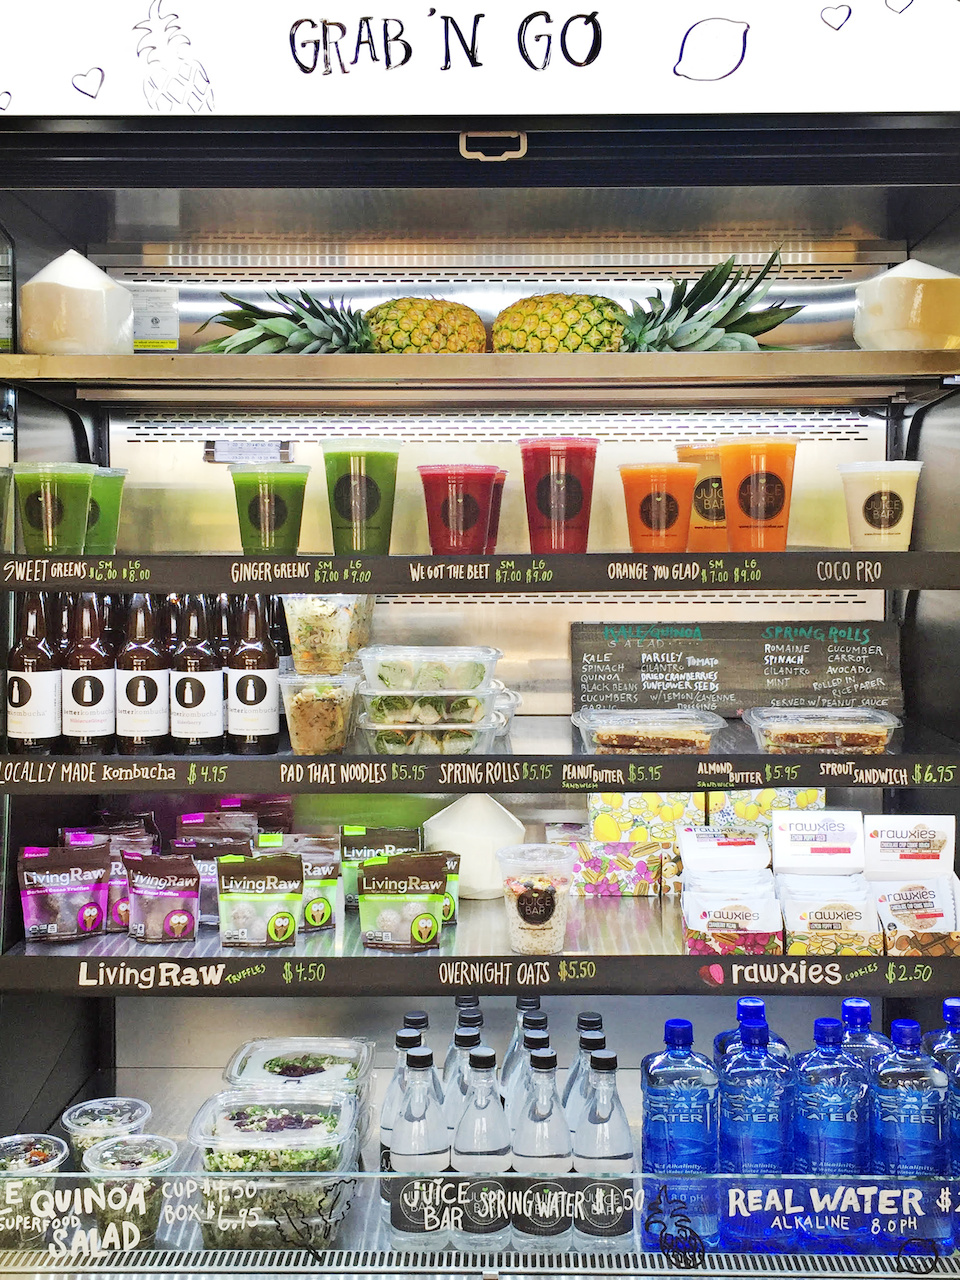 The grab 'n go cooler at Juice Bar offers a colorful array of healthy snacks and libations.